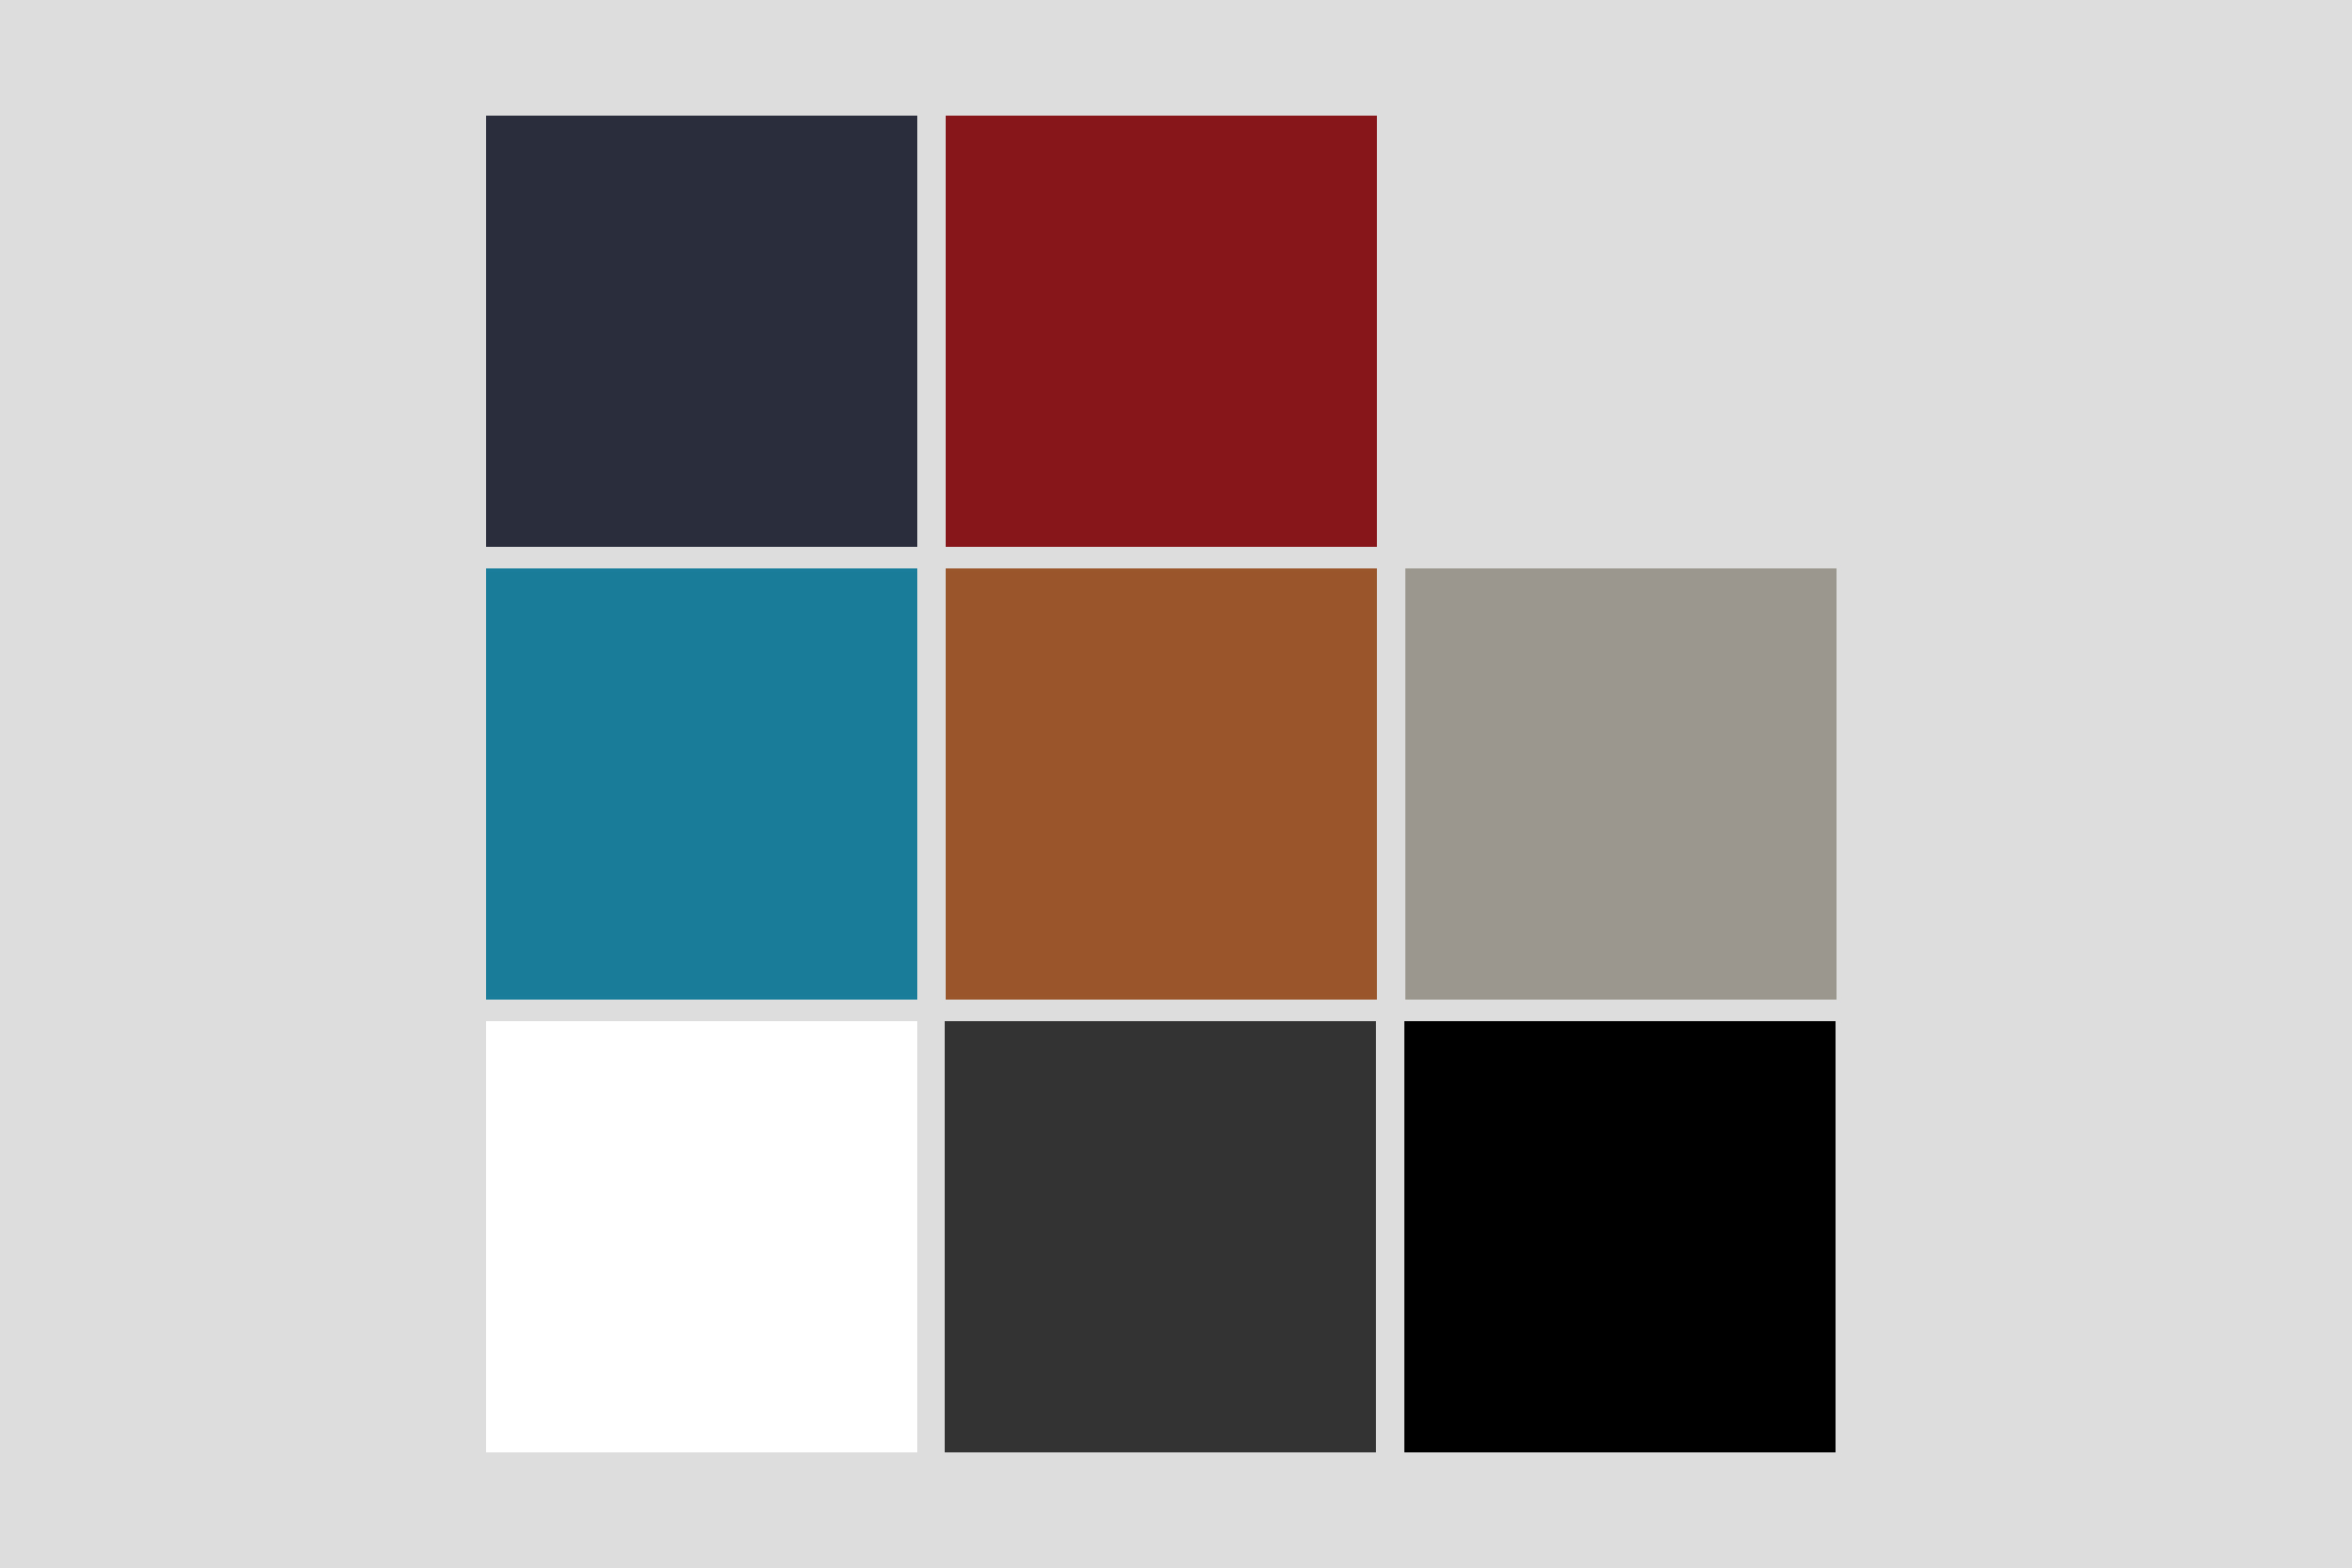 Light grey background color included as neutral color.